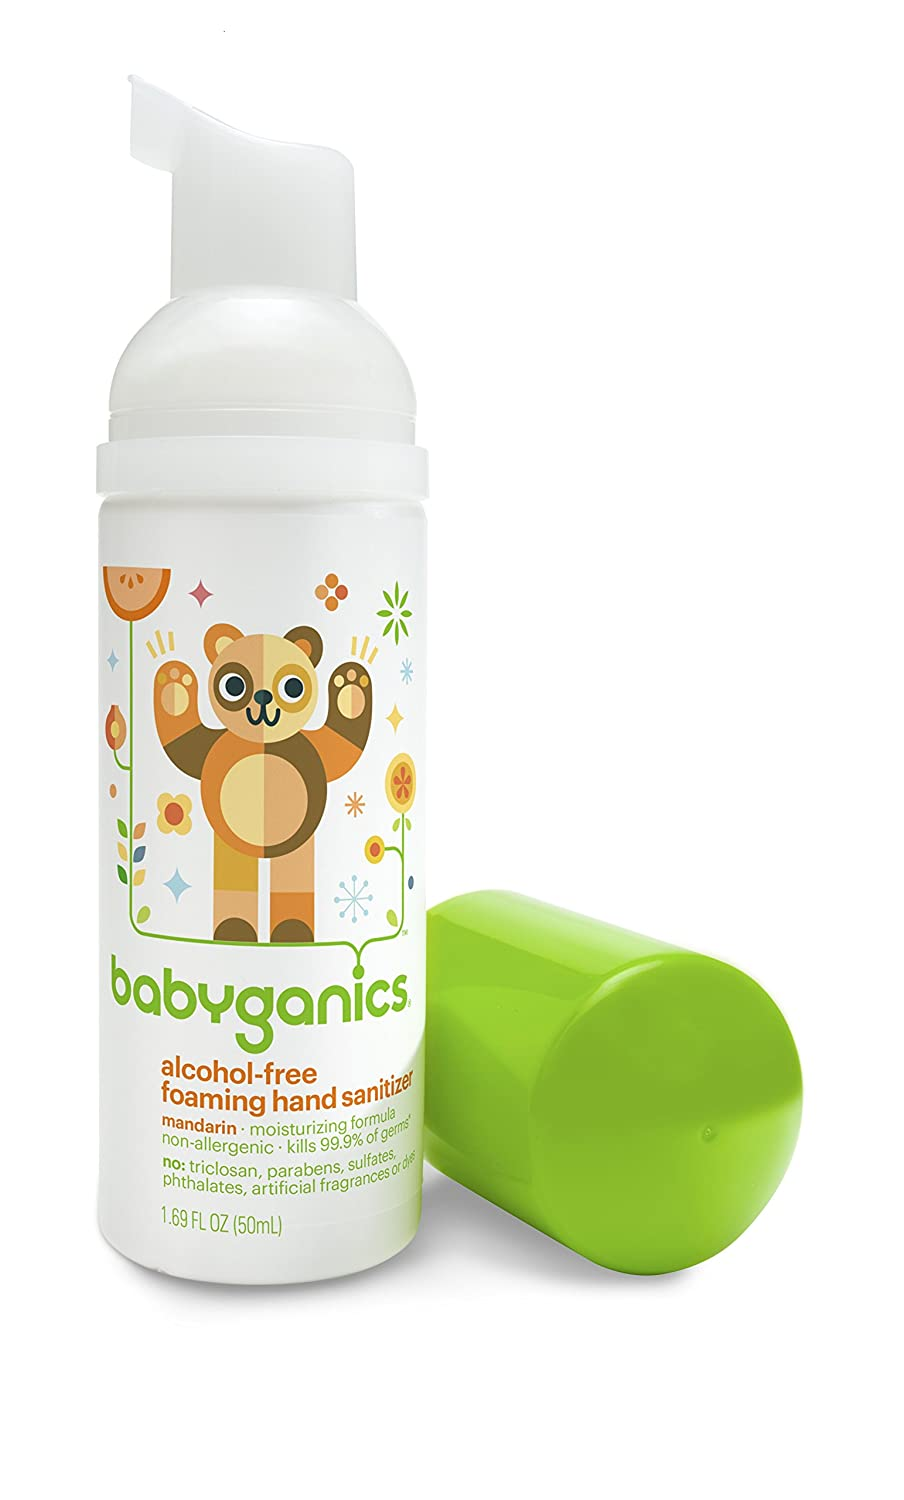 BabyGanics Alcohol Free Foaming Hand Sanitizer On-the-Go, Fragrance Free, Packaging May Vary enfamil infant formula packaging may vary